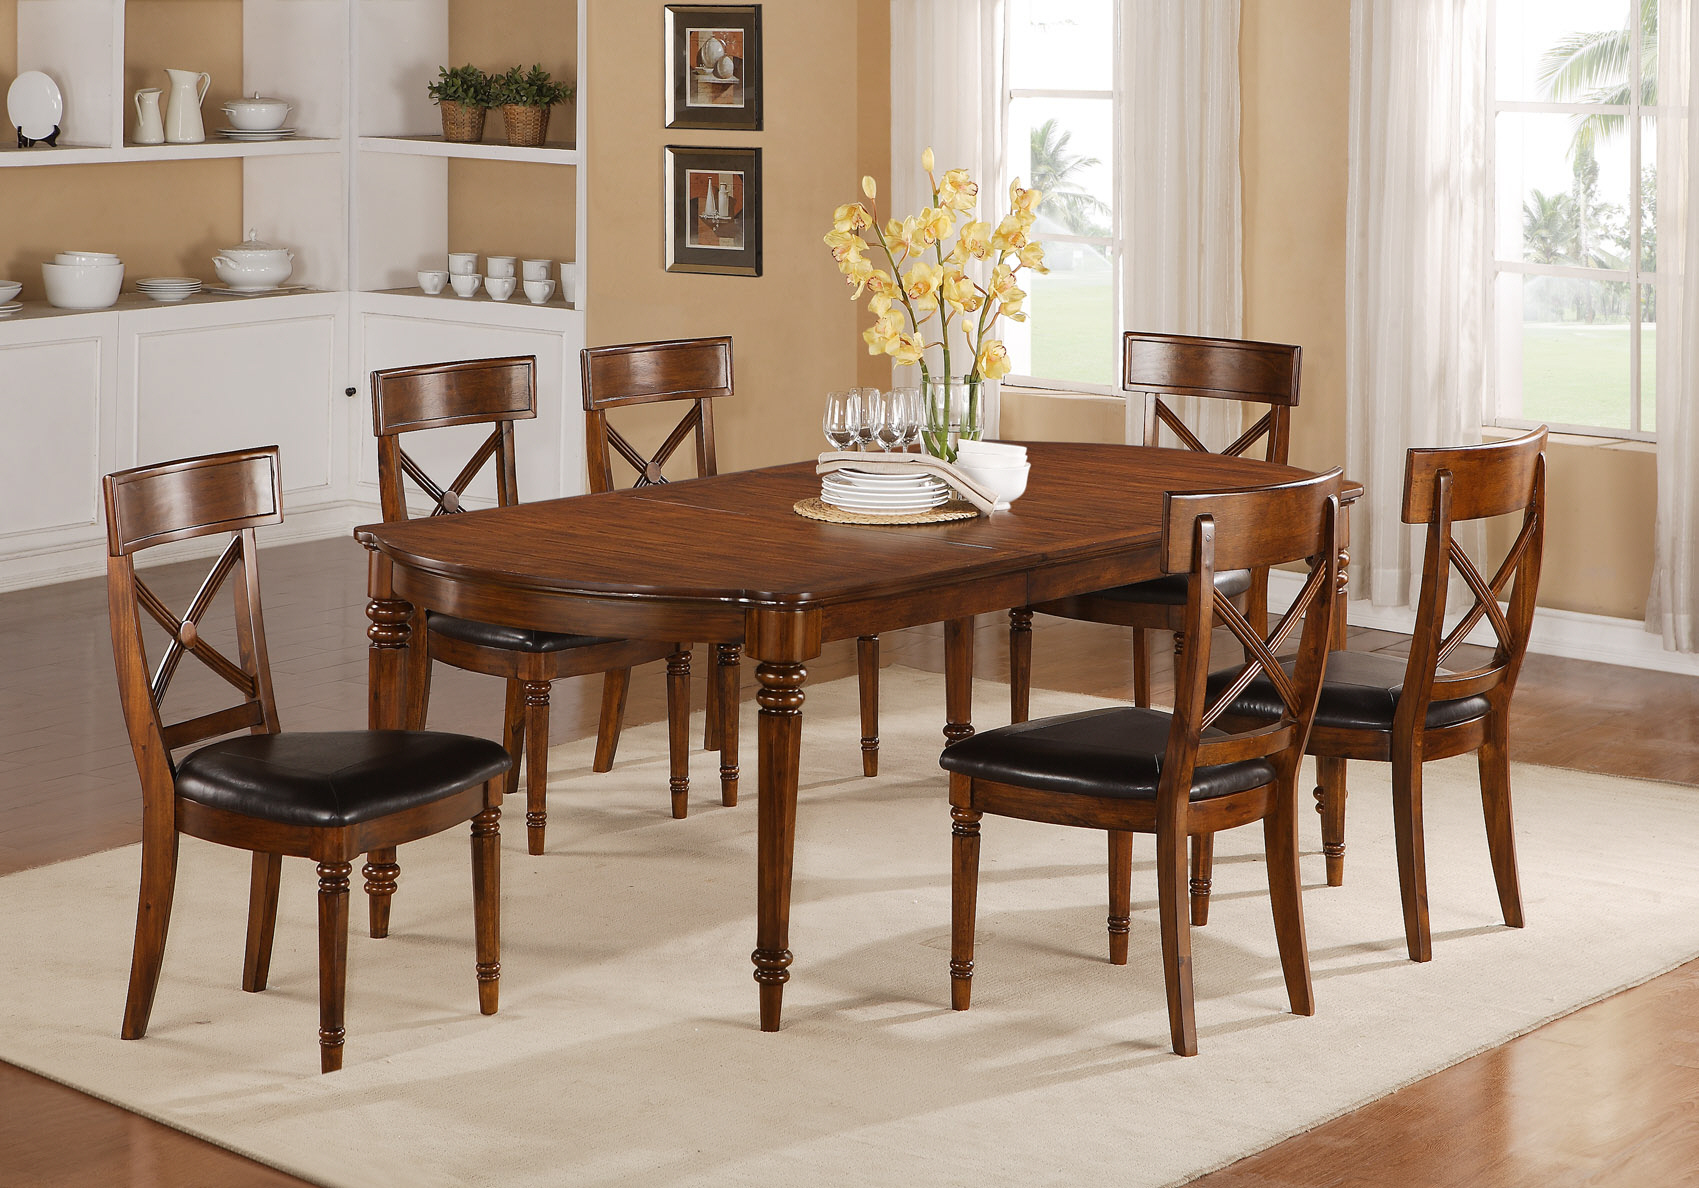 dining table cracked glass top dining table. Black Bedroom Furniture Sets. Home Design Ideas